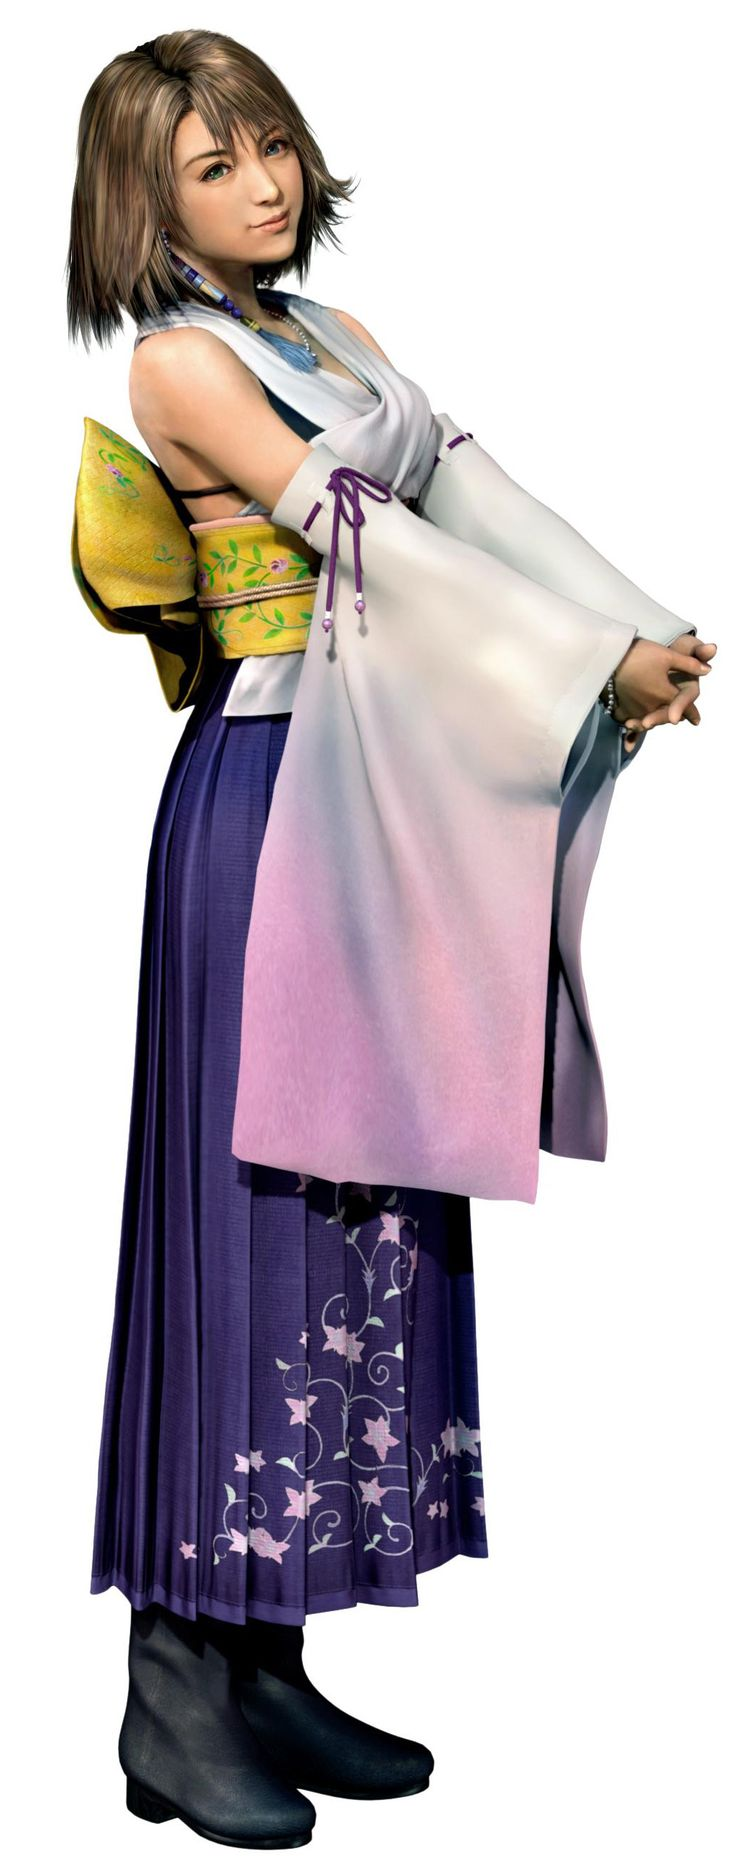 Google Image Result for http://images4.wikia.nocookie.net/__cb20090509181116/finalfantasy2/de/images/4/4a/Yuna_Renderin_FFX.jpg